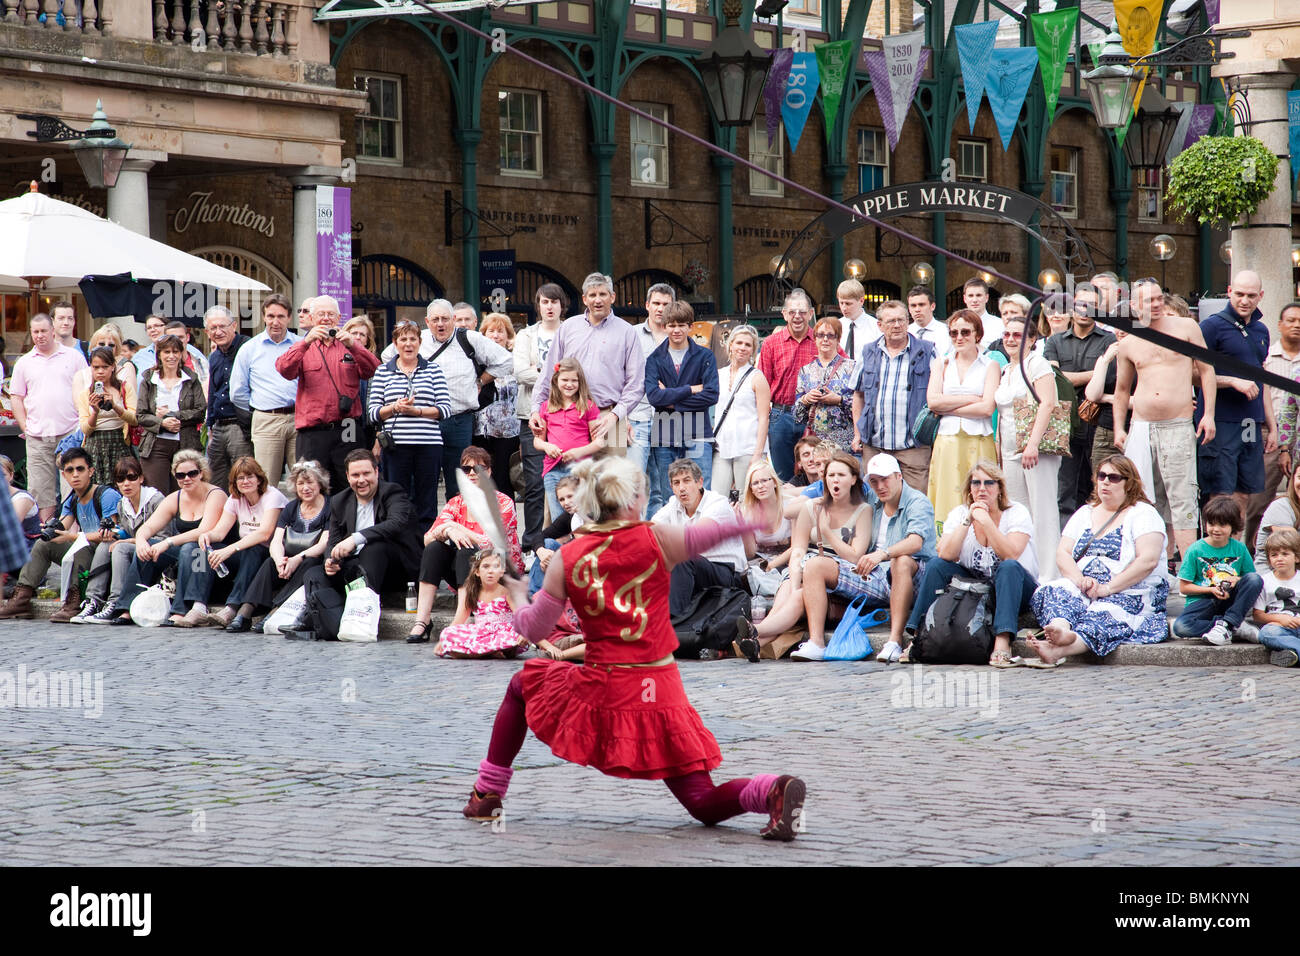 Street performers at Covent Garden, London - Stock Image